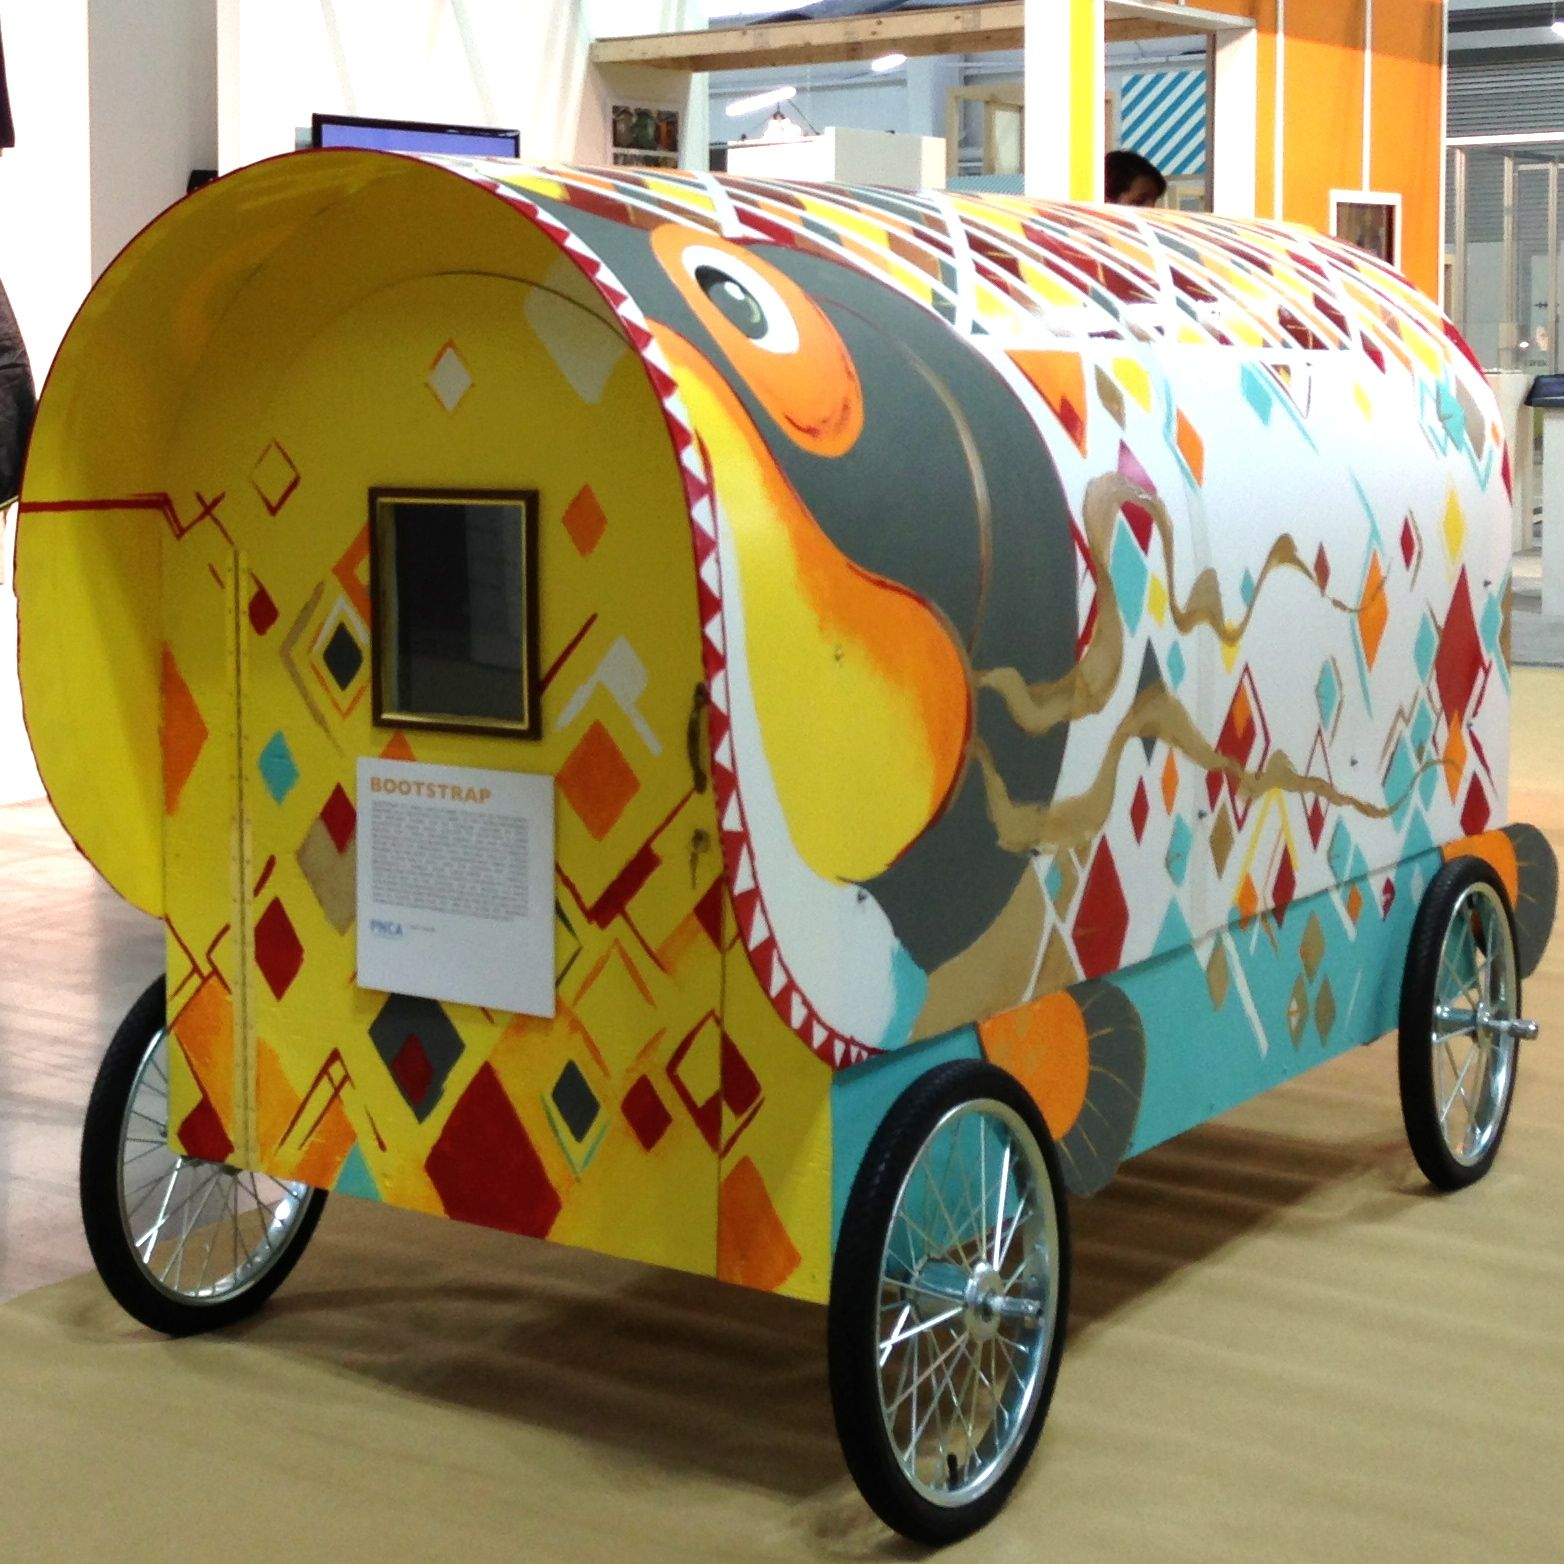 Bike Camper Trailer Another Great Teardrop Bike Trailer The Window They Added Is A